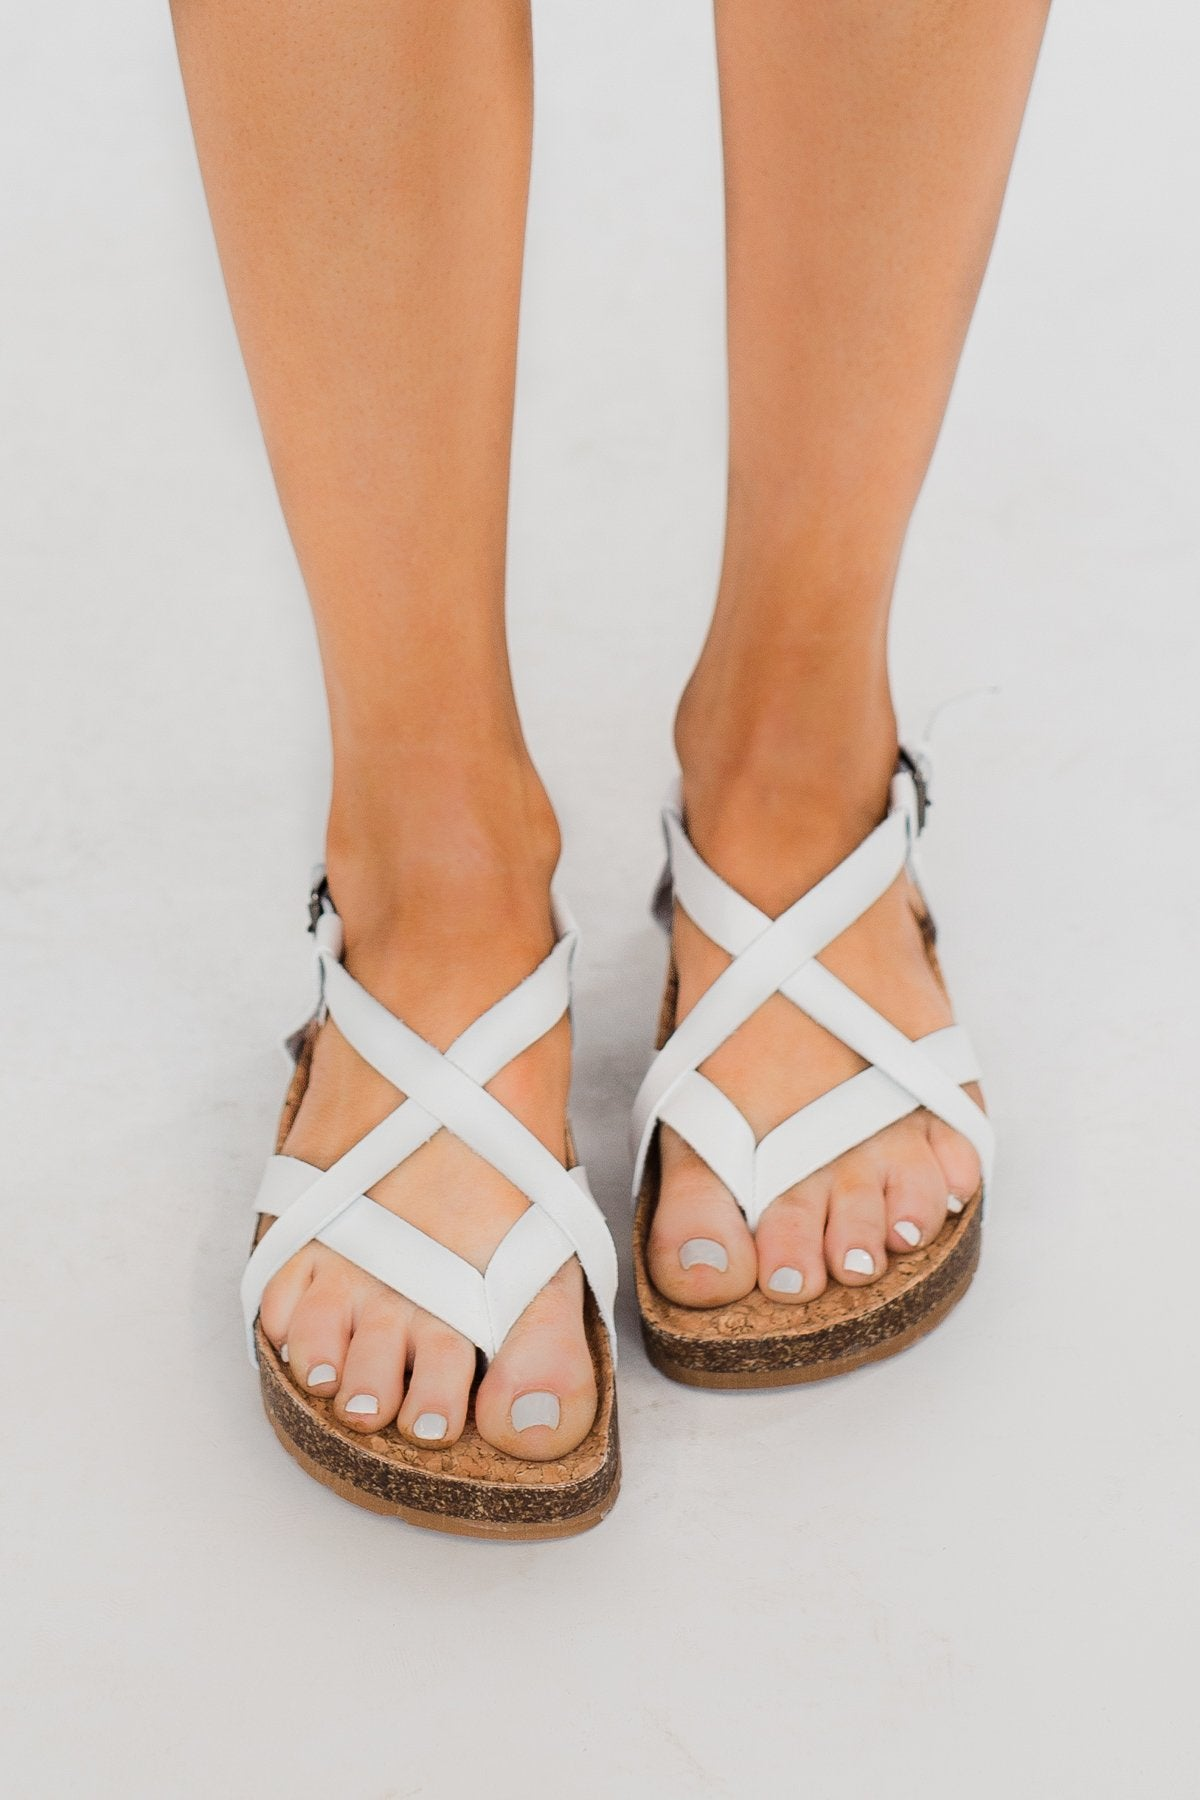 Sugar Ellexa Sandals- White Smooth